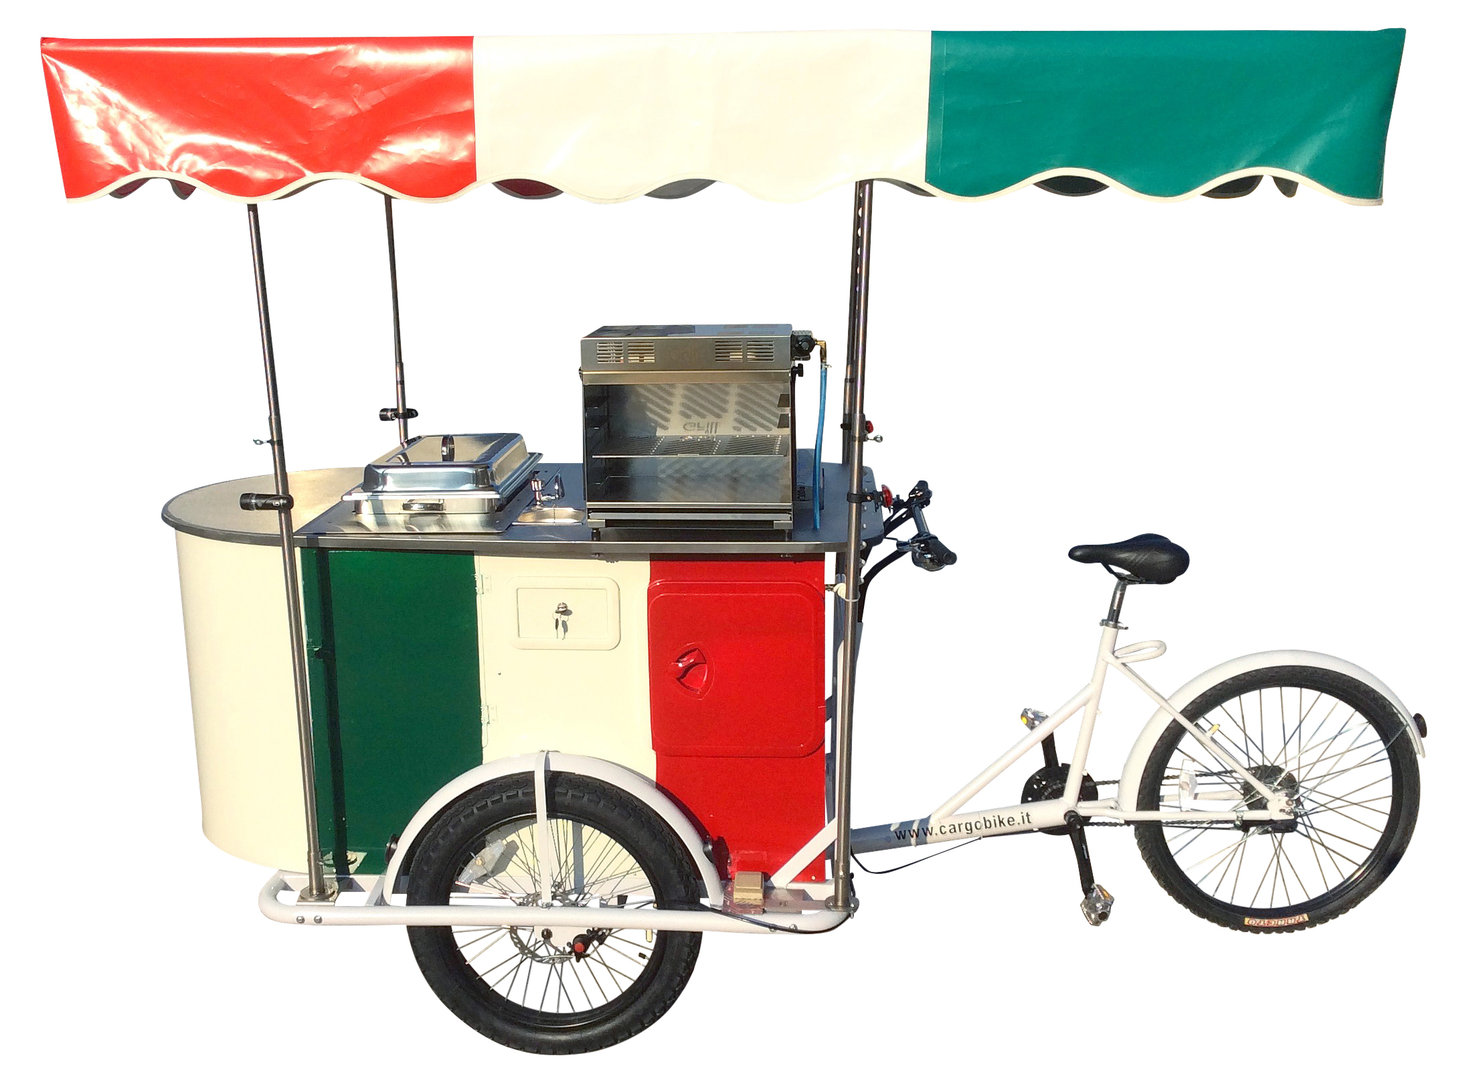 STREET FOOD BIKE REVIVAL BASIC